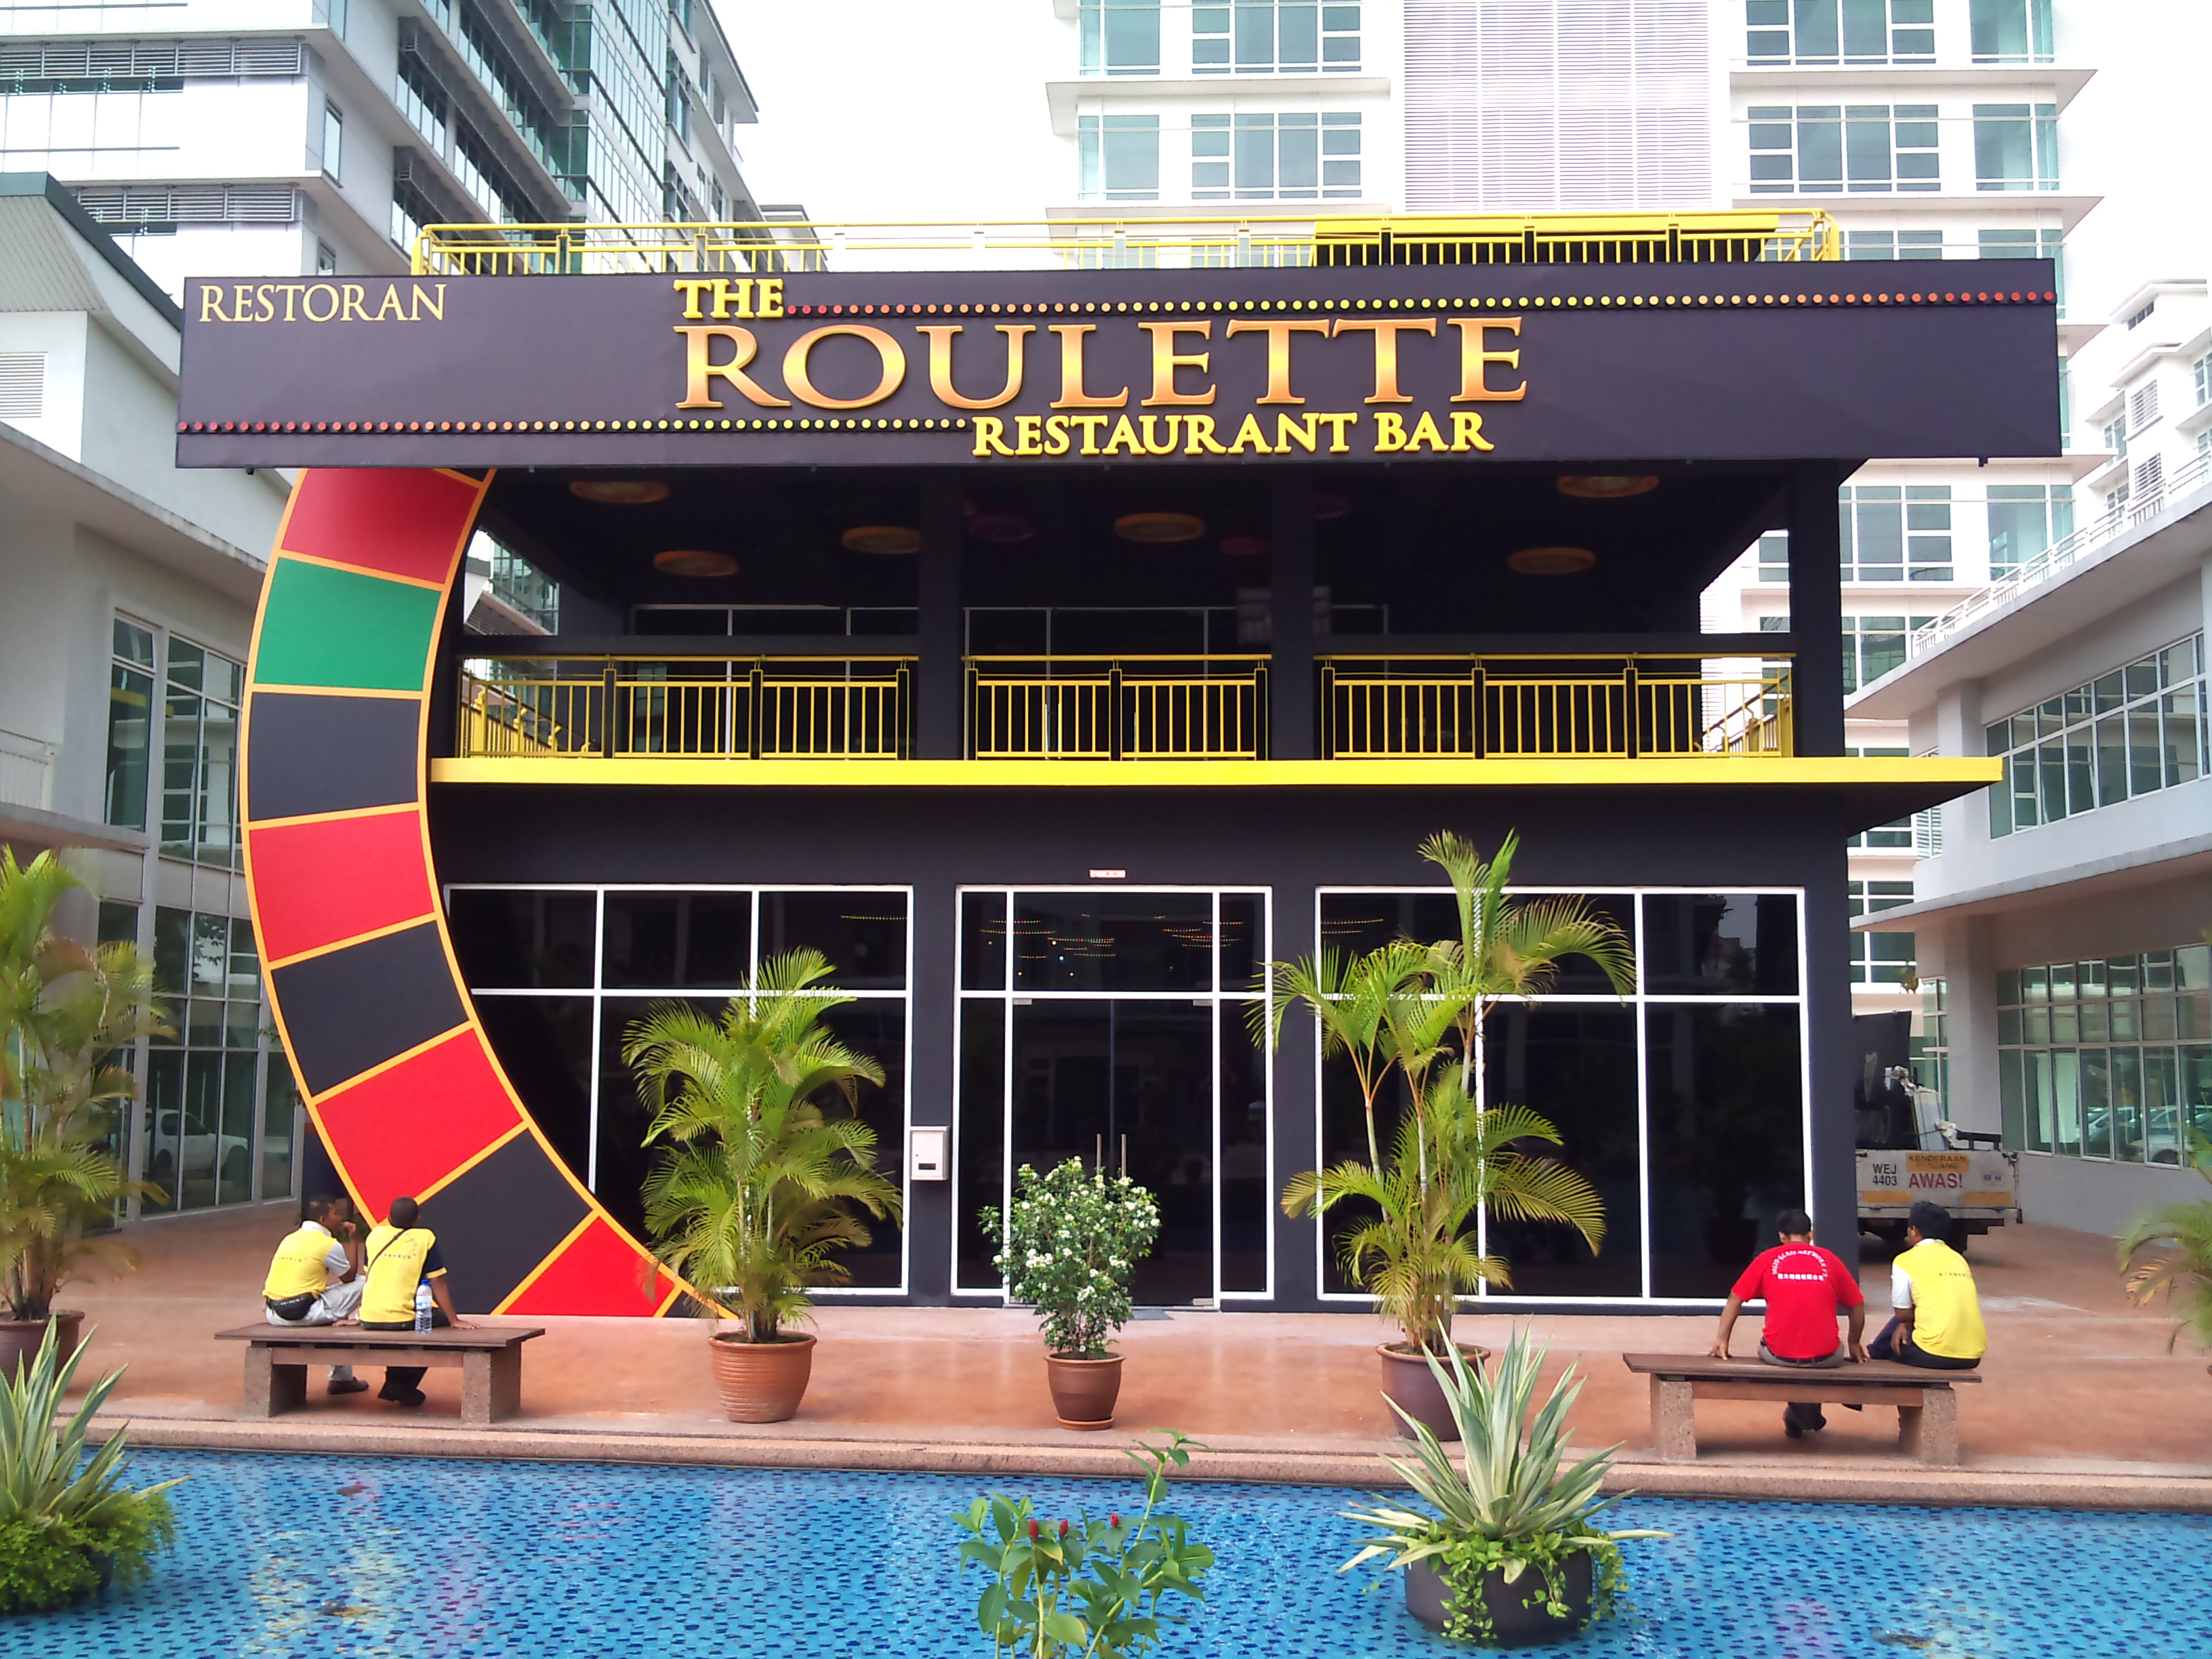 Make a living from roulette